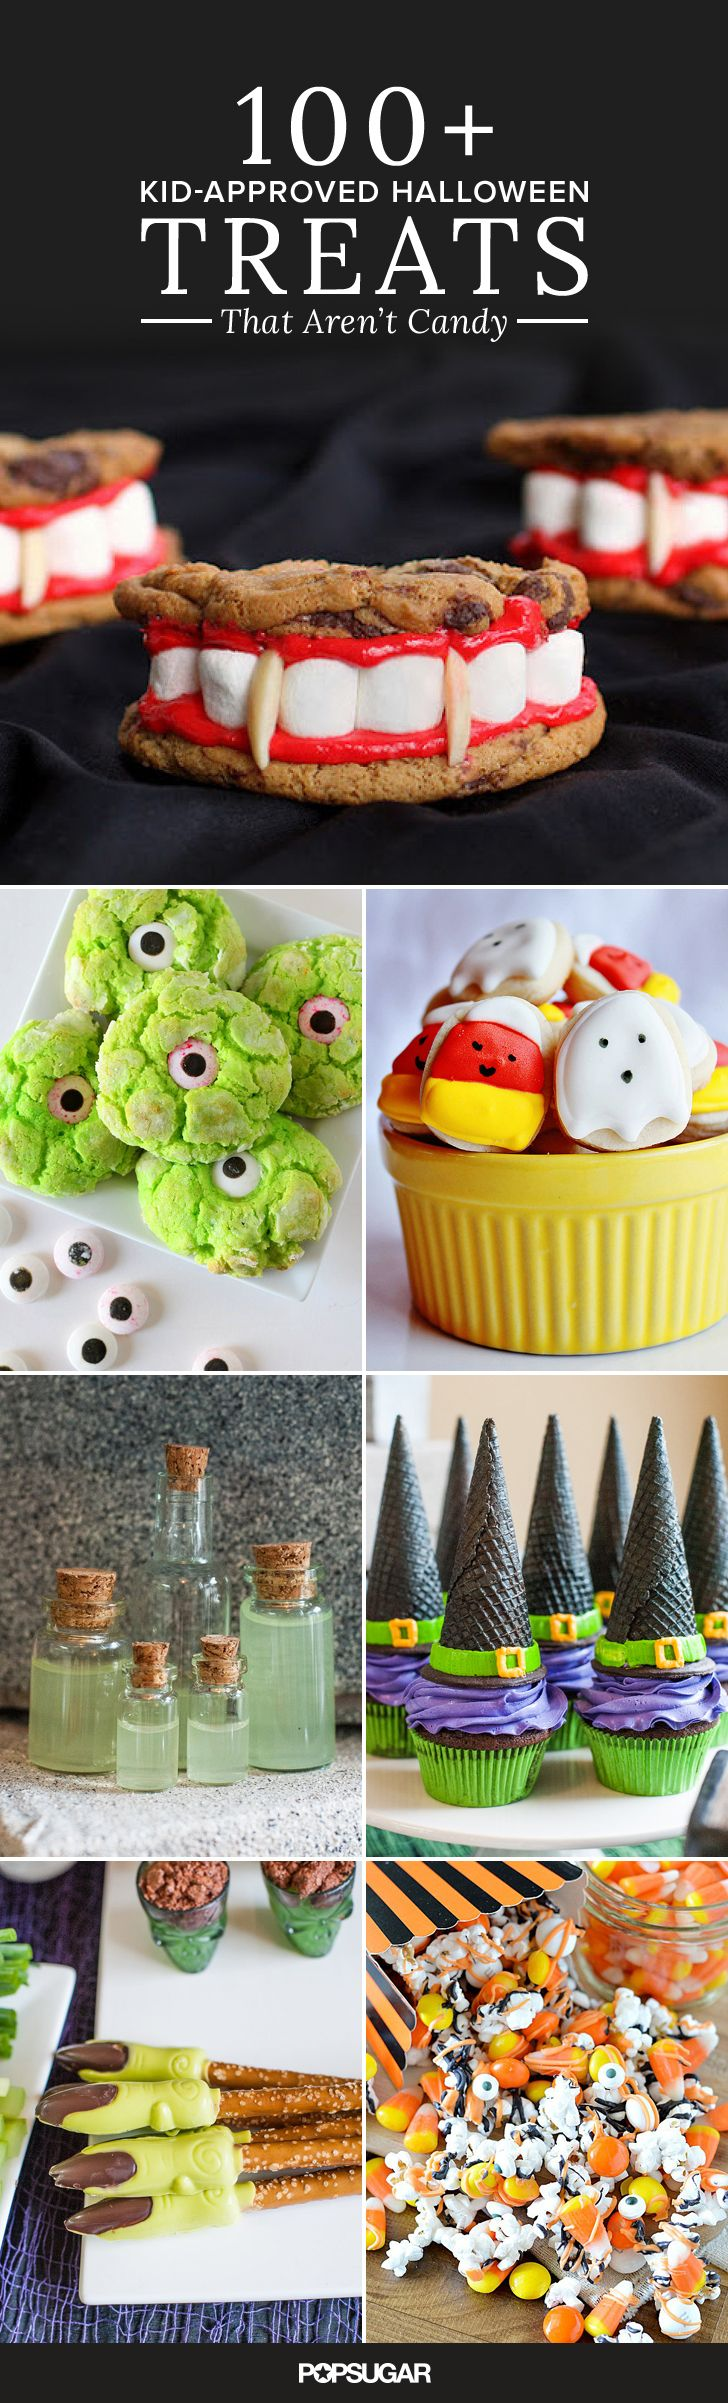 38532 best ** ~ Holiday Delights! ~ ** images on Pinterest